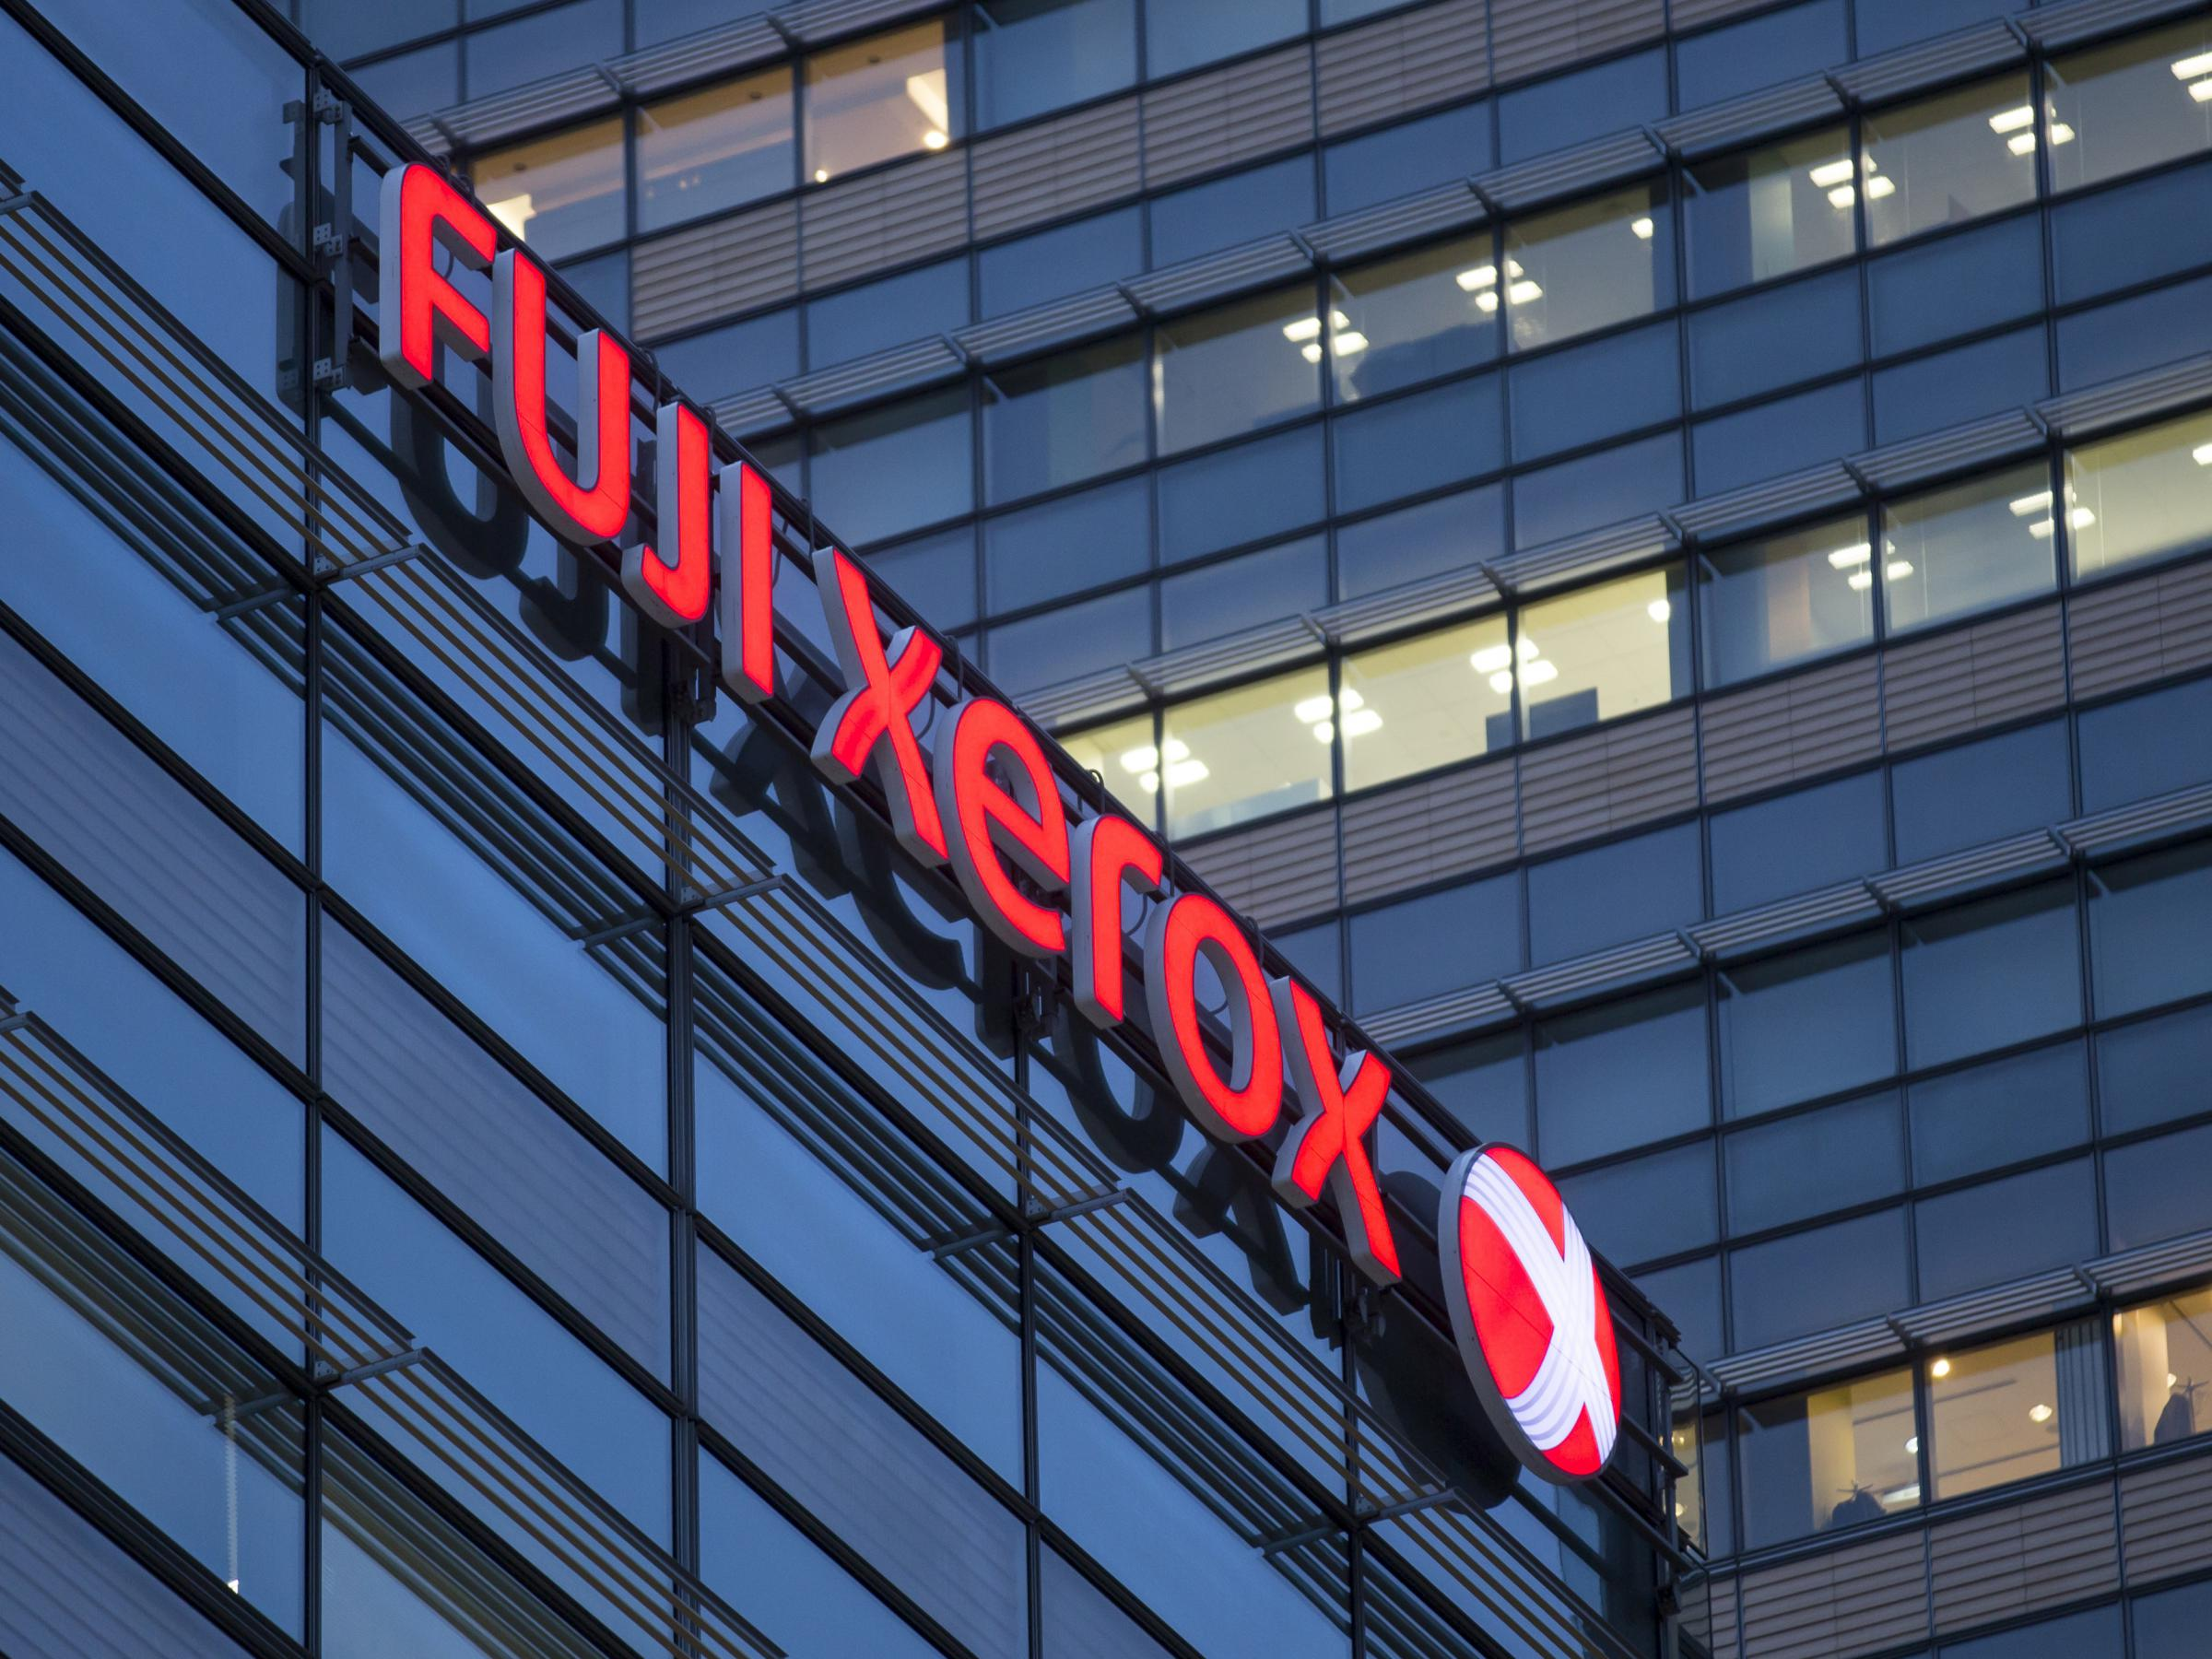 Fujifilm acquires Xerox in a $6.1 billion deal